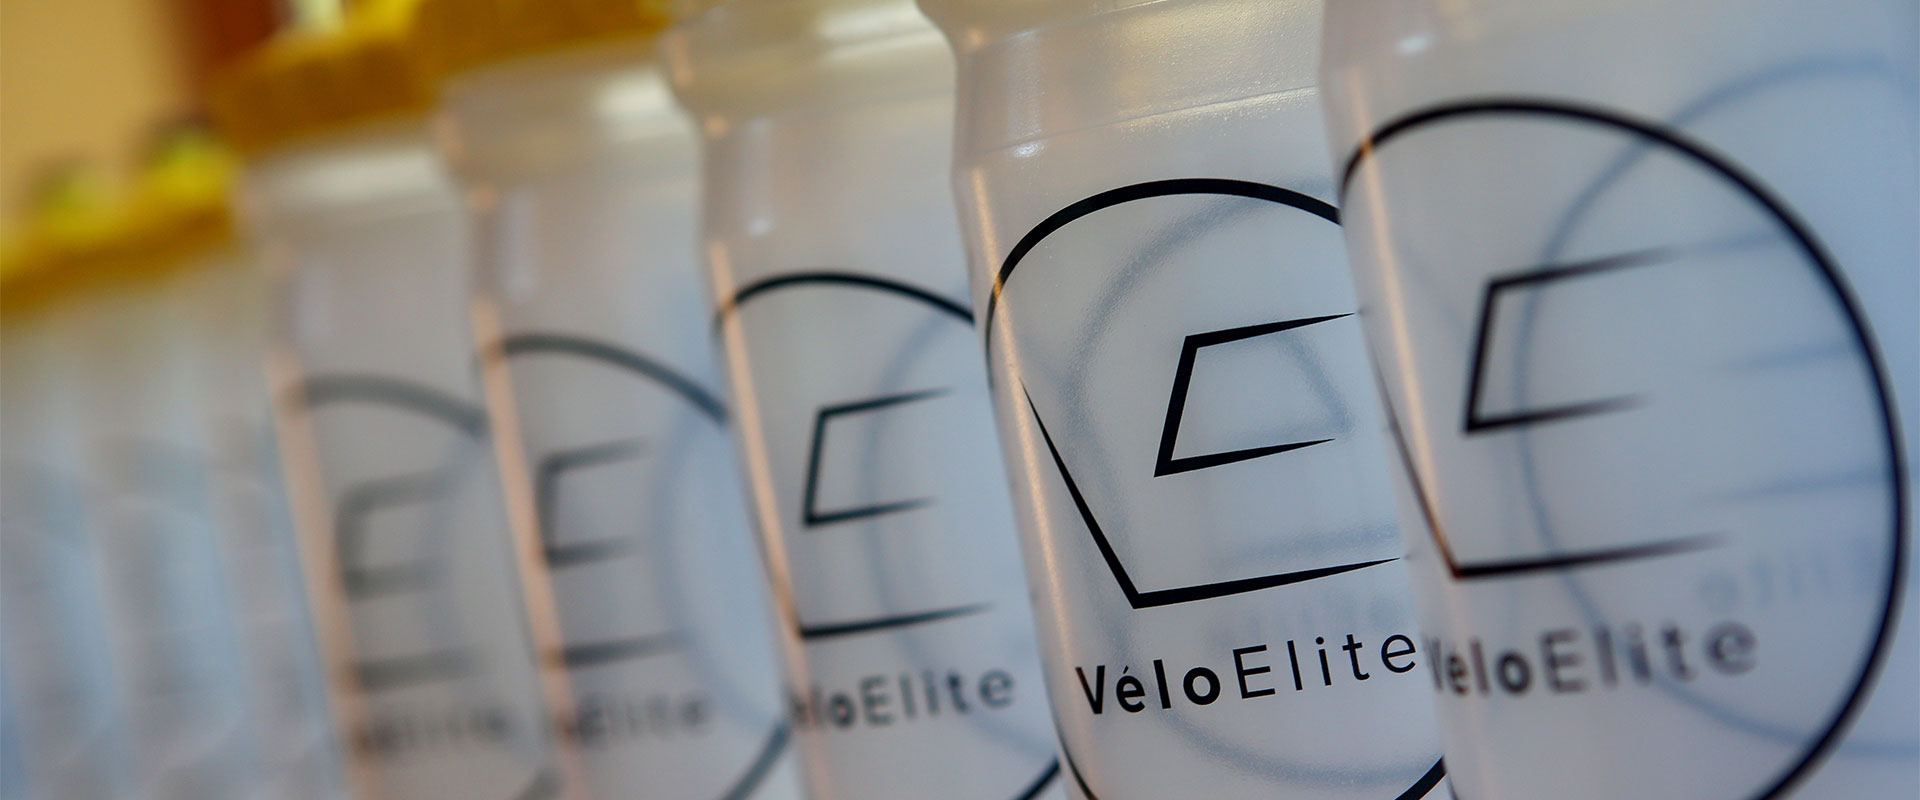 VeloElite bike shop